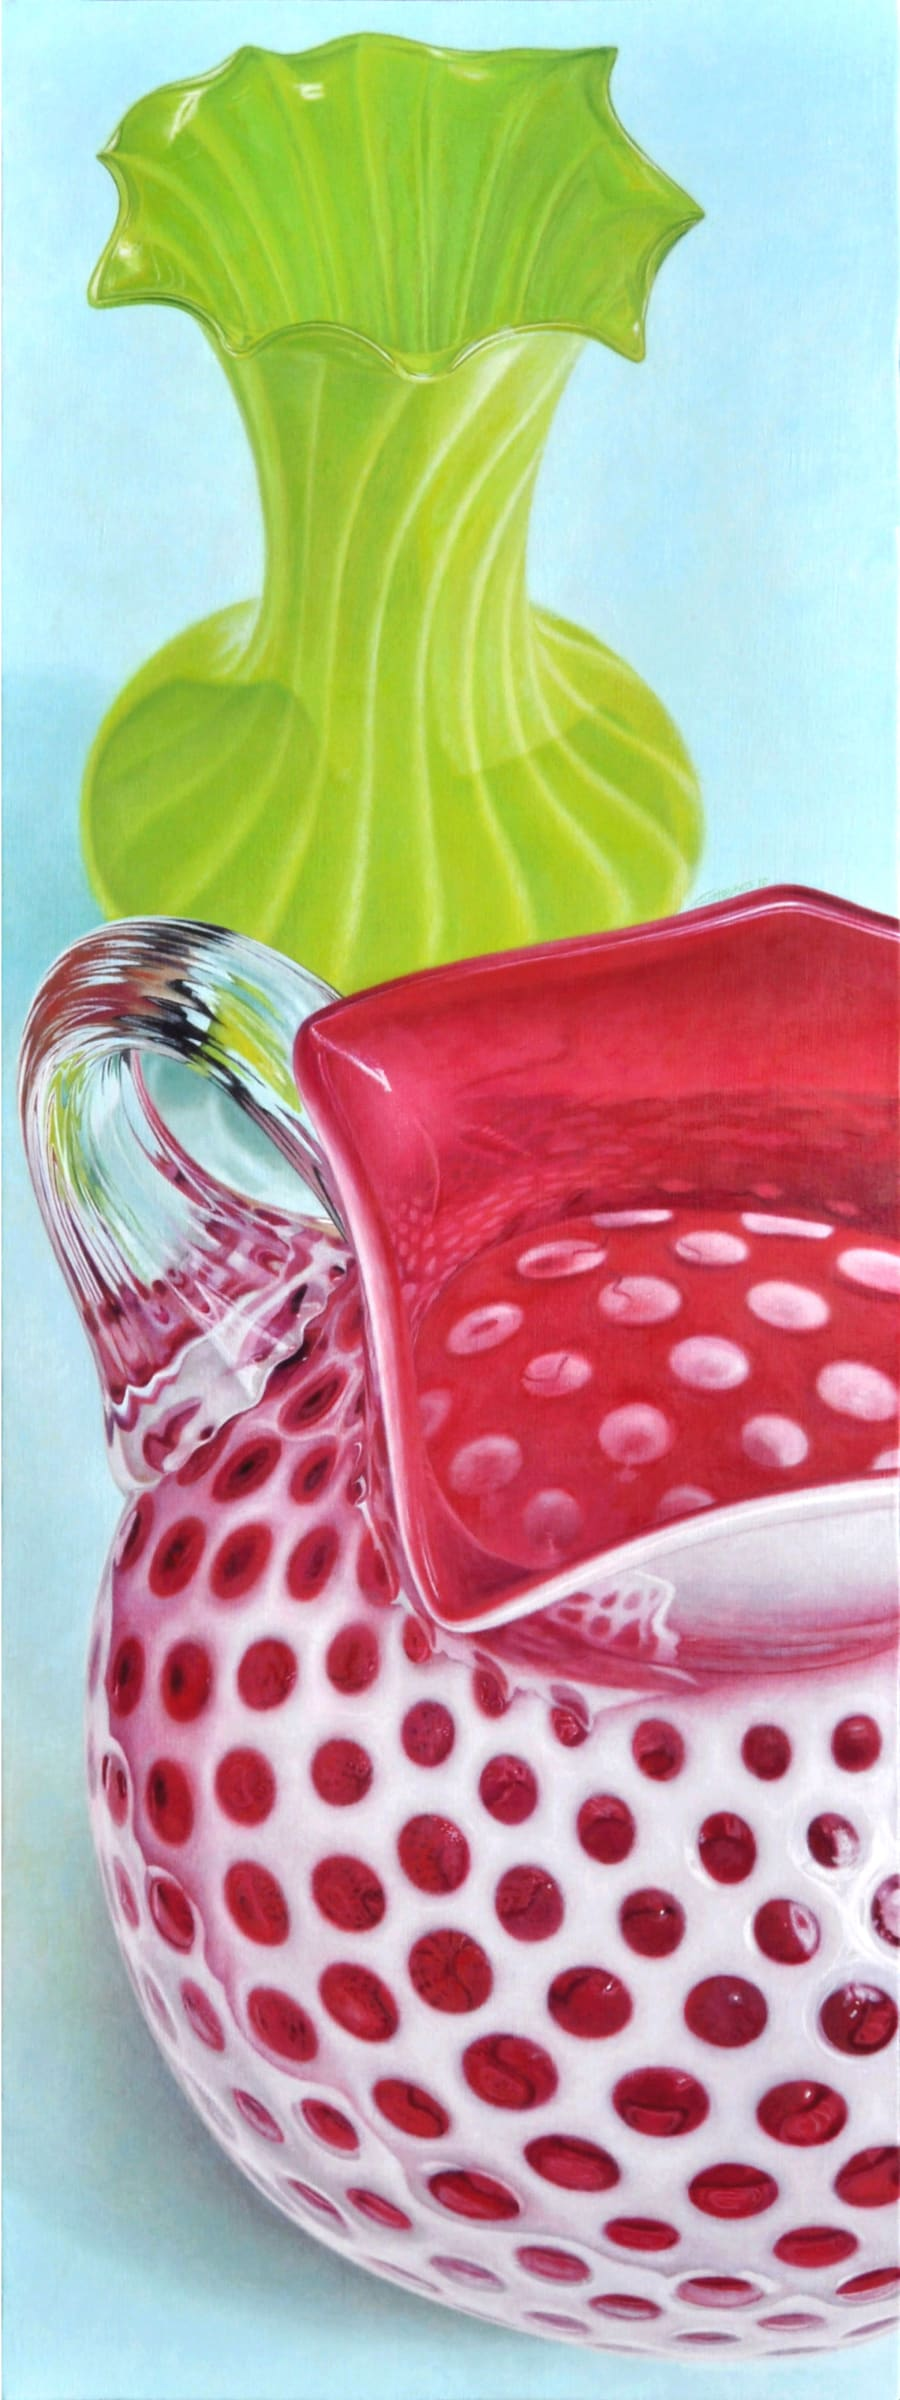 """<span class=""""link fancybox-details-link""""><a href=""""/artists/76-greg-haynes/works/1203-greg-haynes-pitcher-and-vase/"""">View Detail Page</a></span><div class=""""artist""""><strong>Greg Haynes</strong></div> <div class=""""title""""><em>Pitcher and Vase</em></div> <div class=""""medium"""">Oil on canvas</div> <div class=""""dimensions"""">64 x 24 inches</div>"""